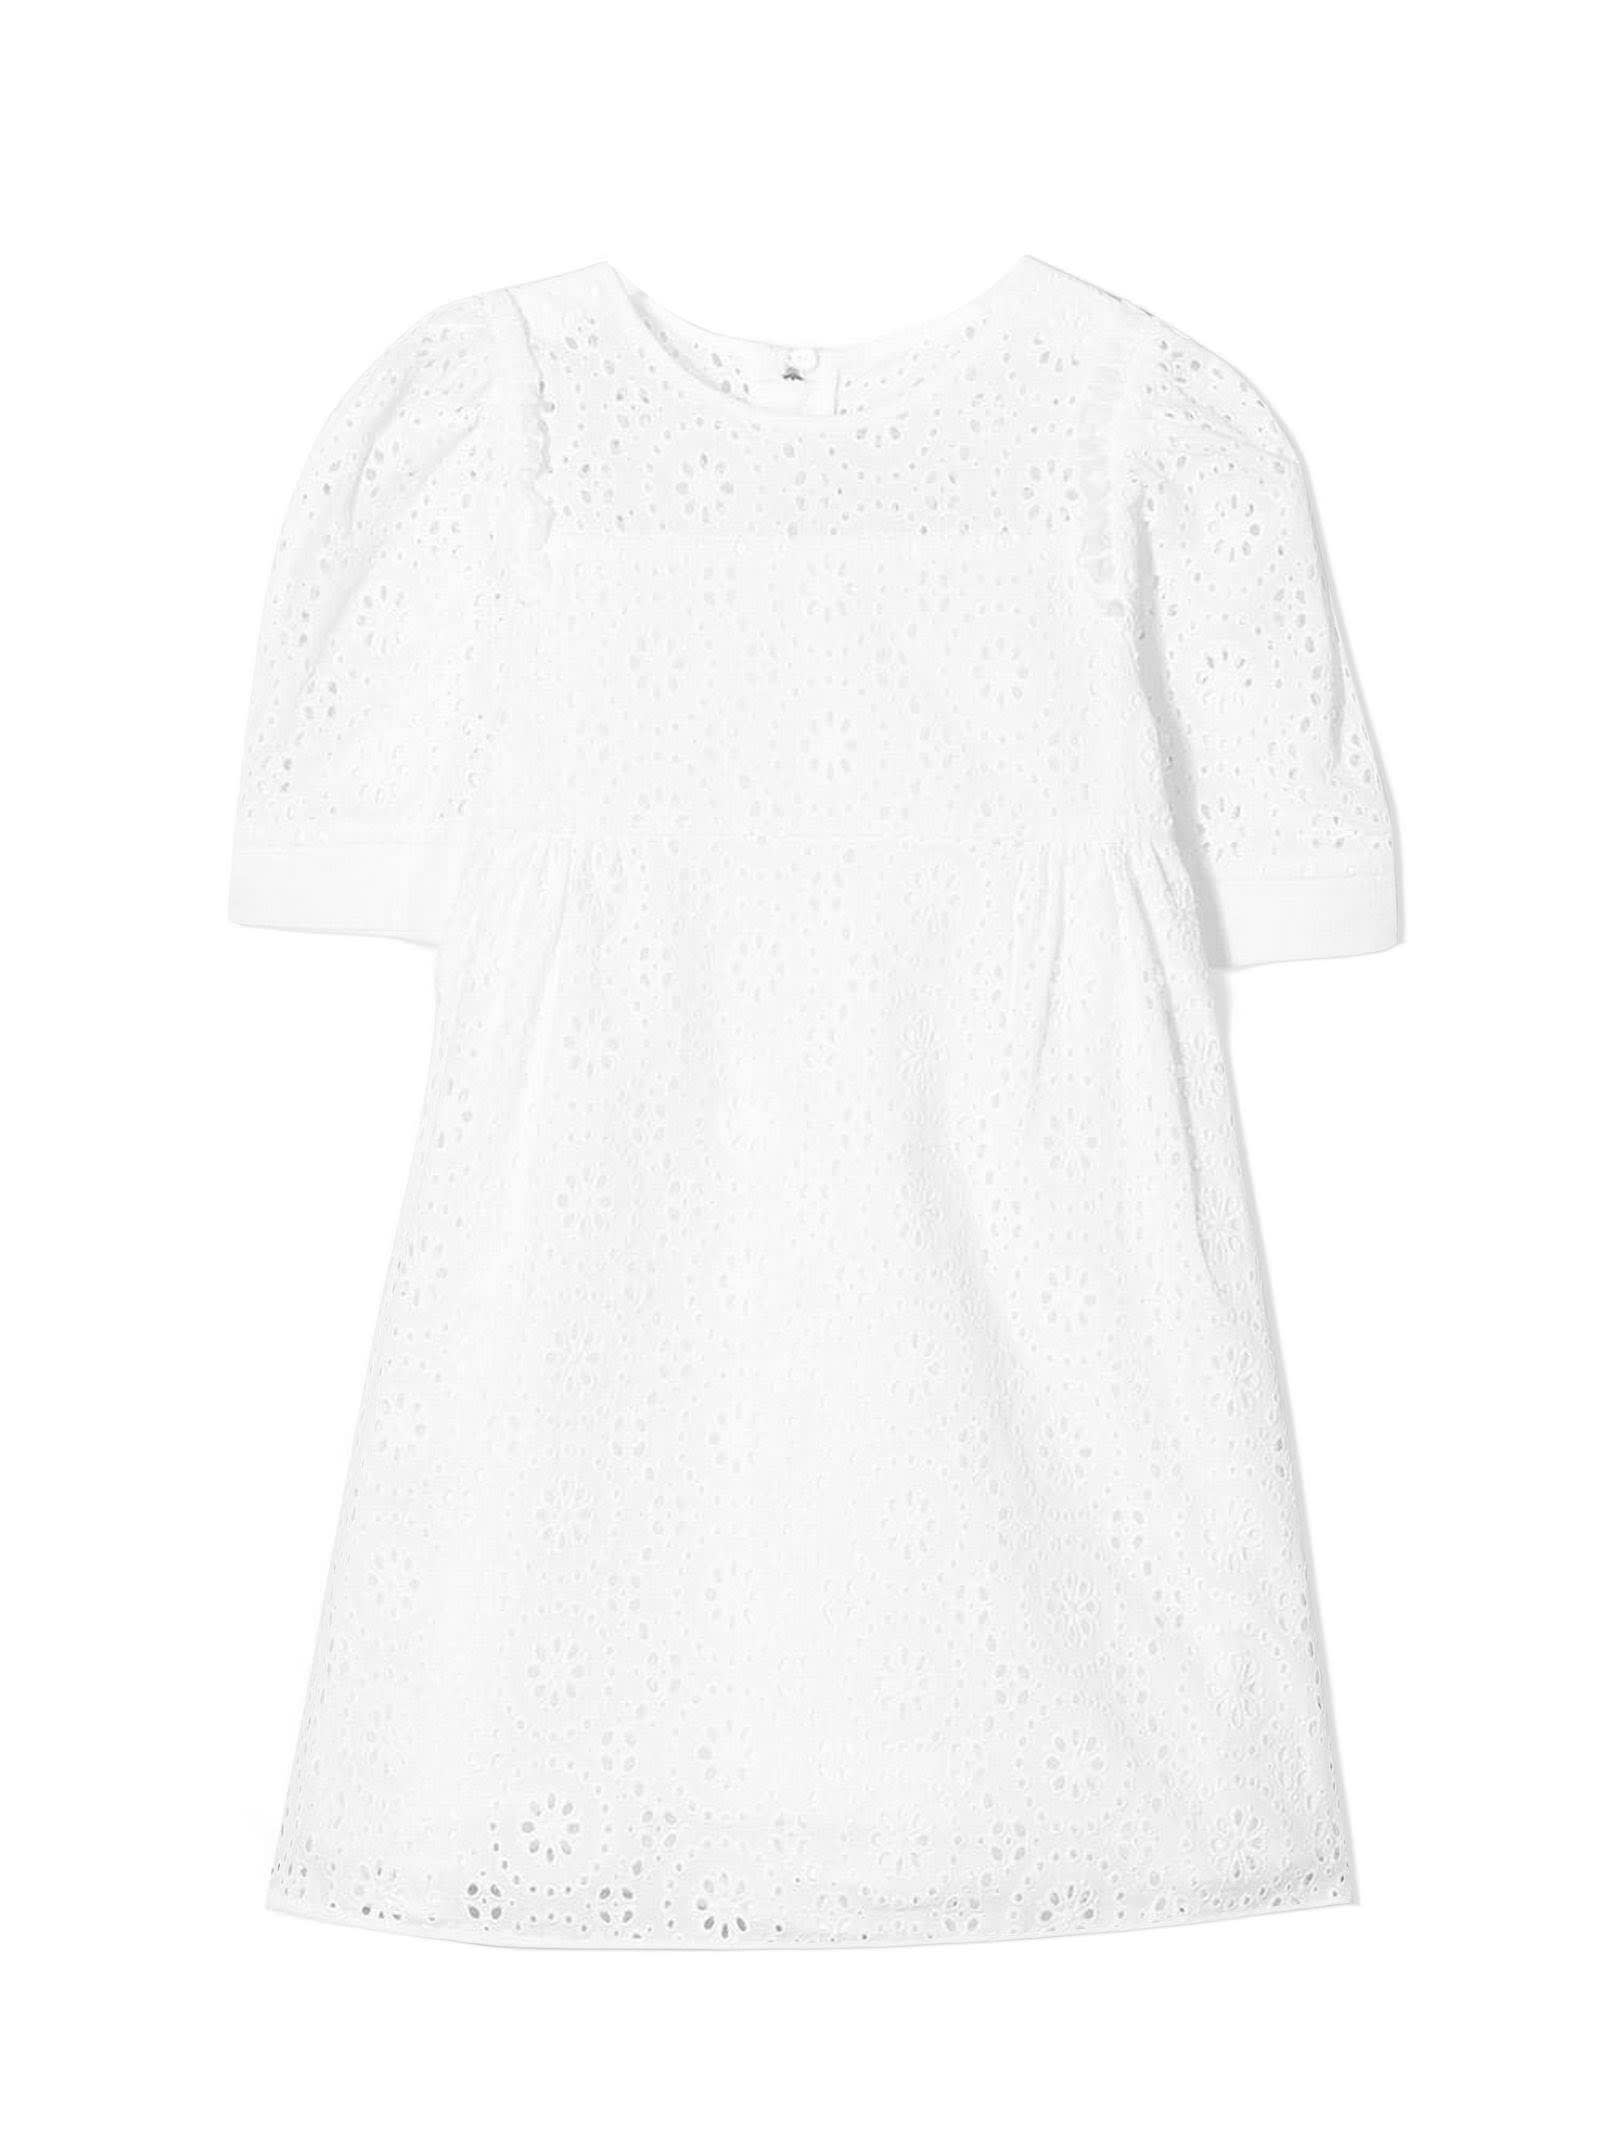 Chloé White Cotton Broderie Anglais Dress